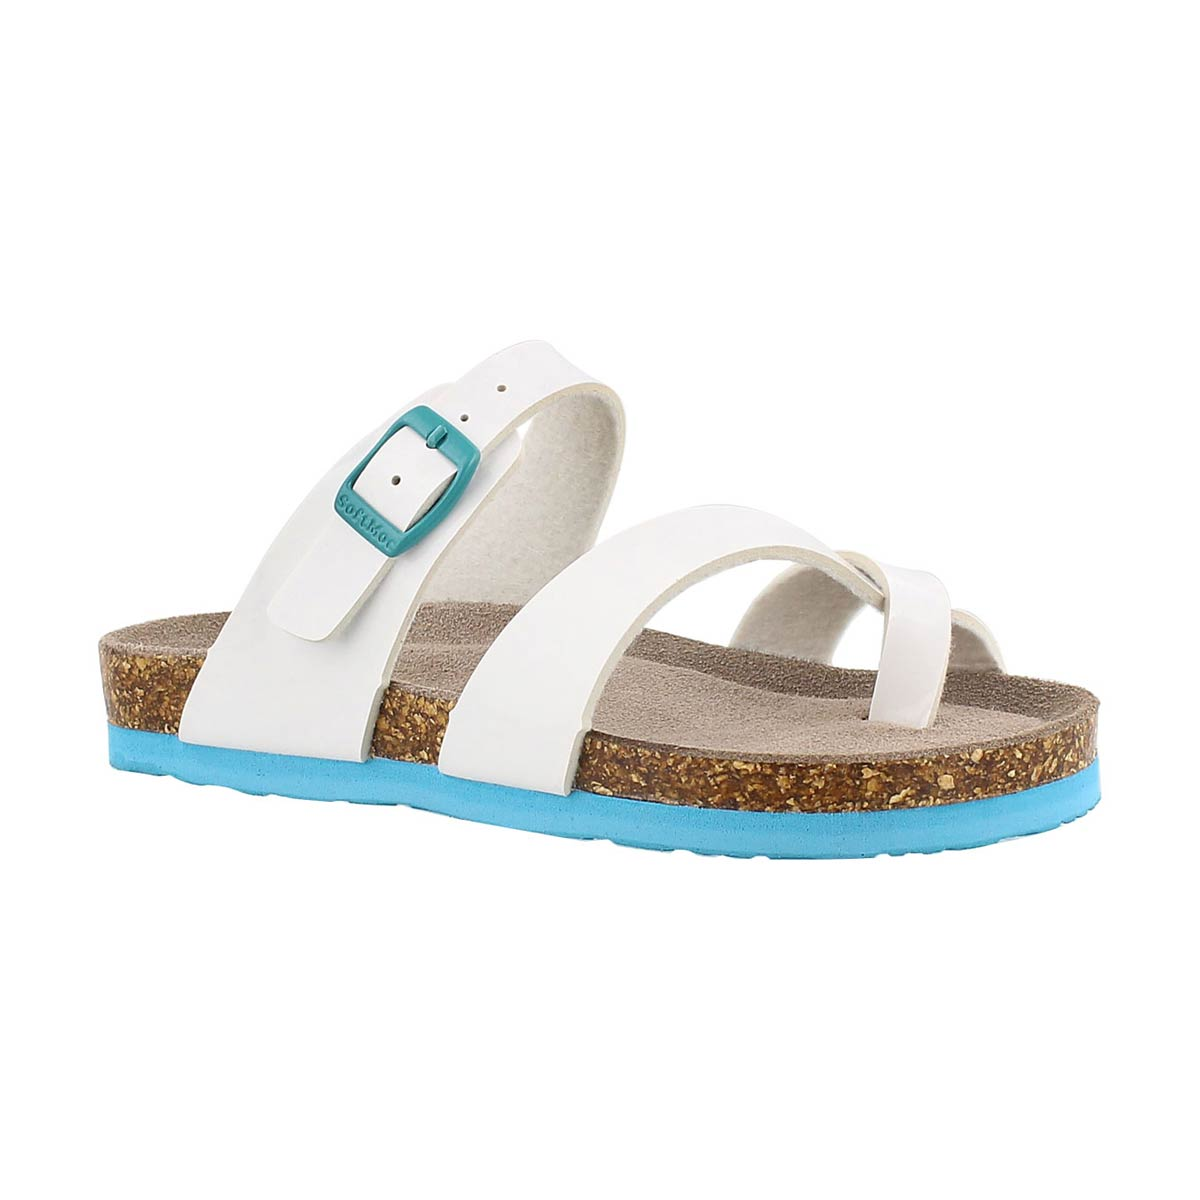 Girls' ALICIA white patent toe loop sandals